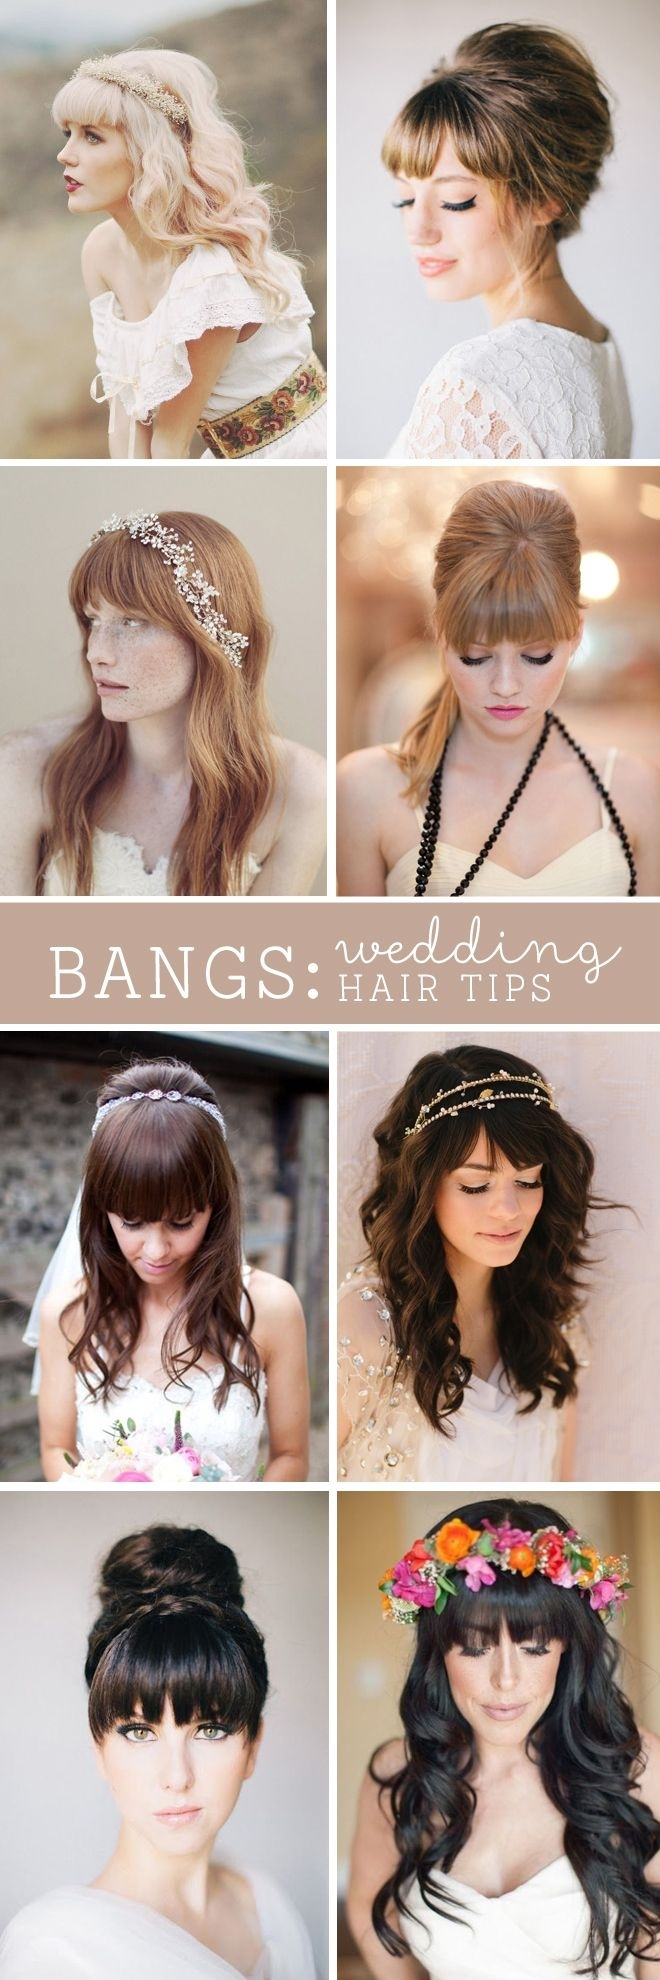 Must Read Tips For Wedding Hairstyles With Full Fringe (Bangs pertaining to Wedding Hair Styles With Full Fringe